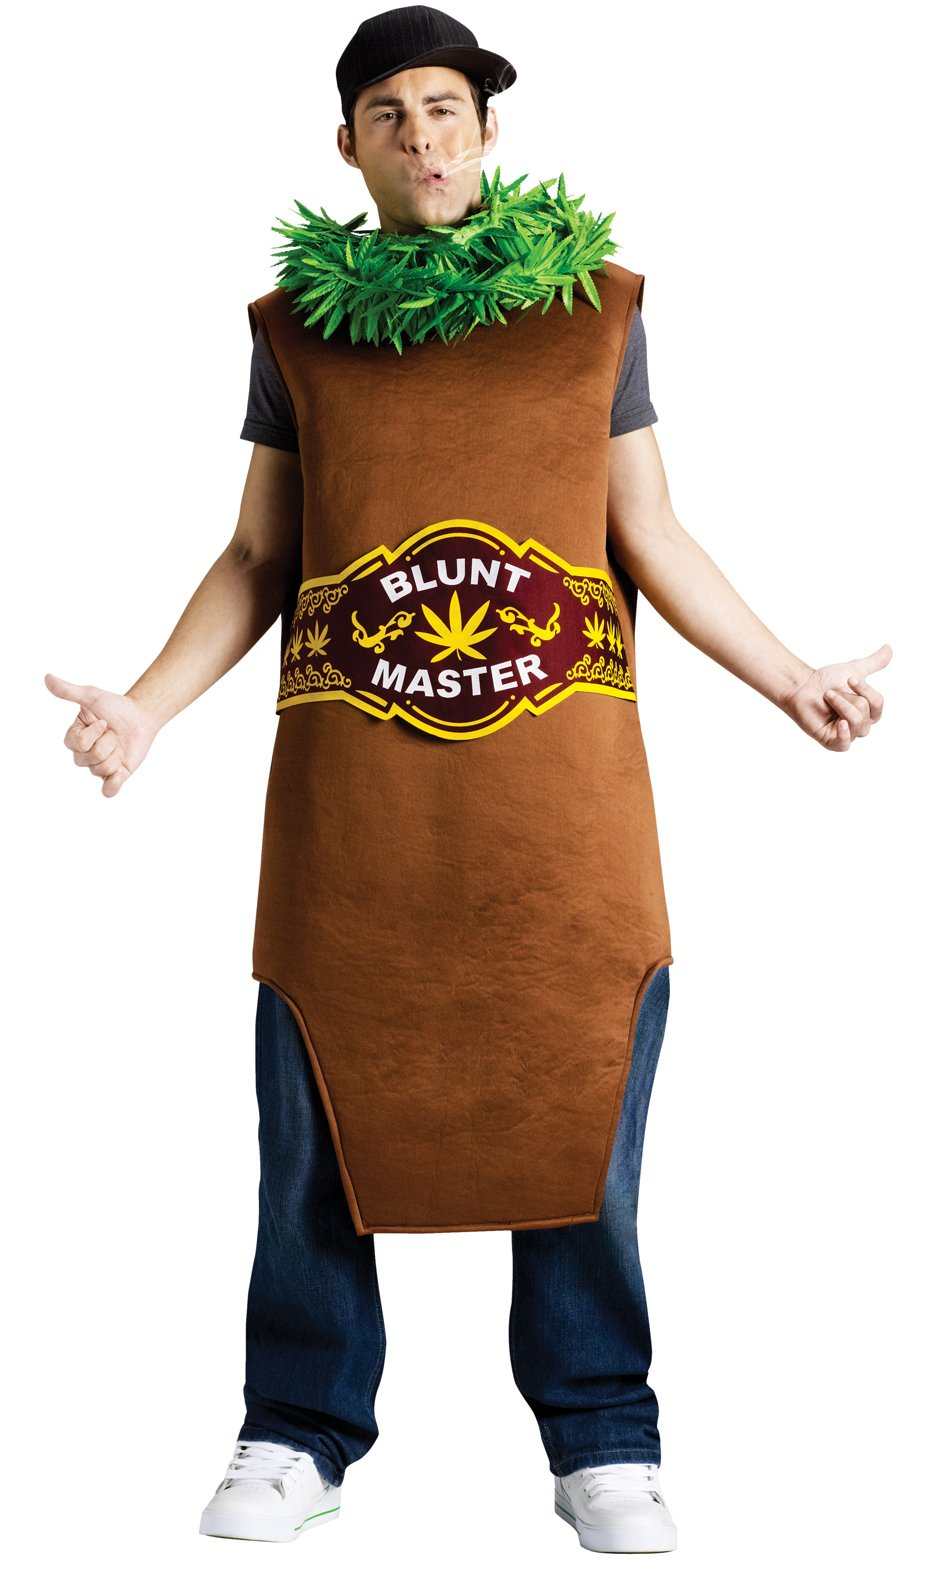 Blunt Master Joint Adult Costume